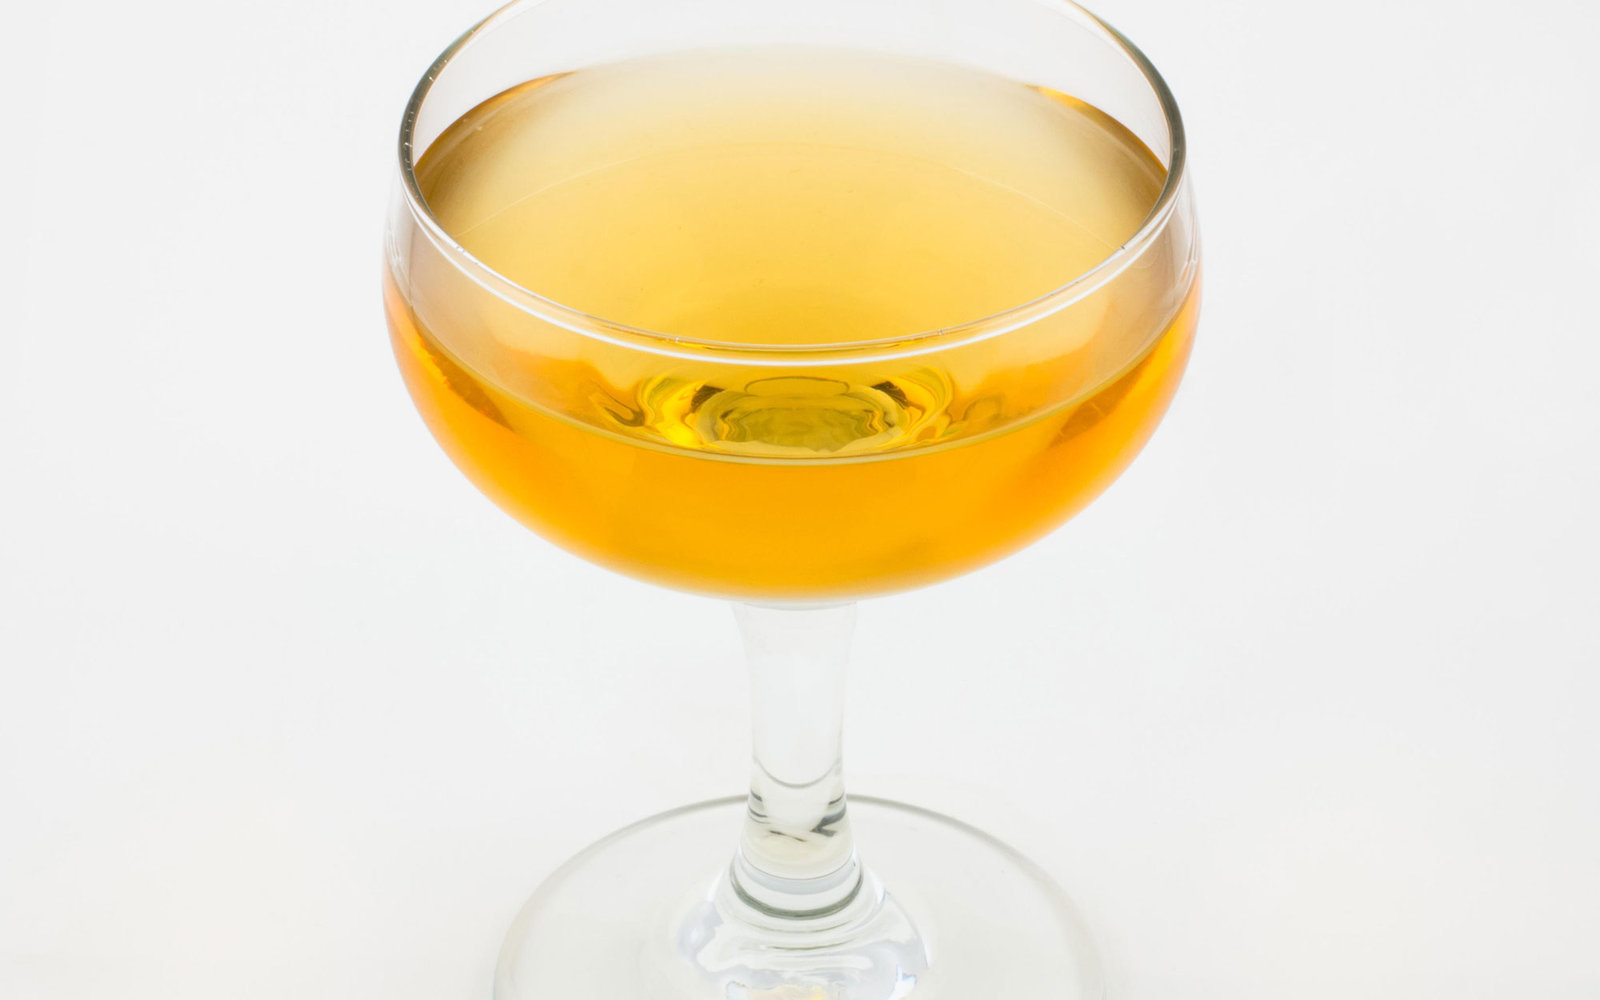 Corpse Reviver Cocktail London Hangover Cures